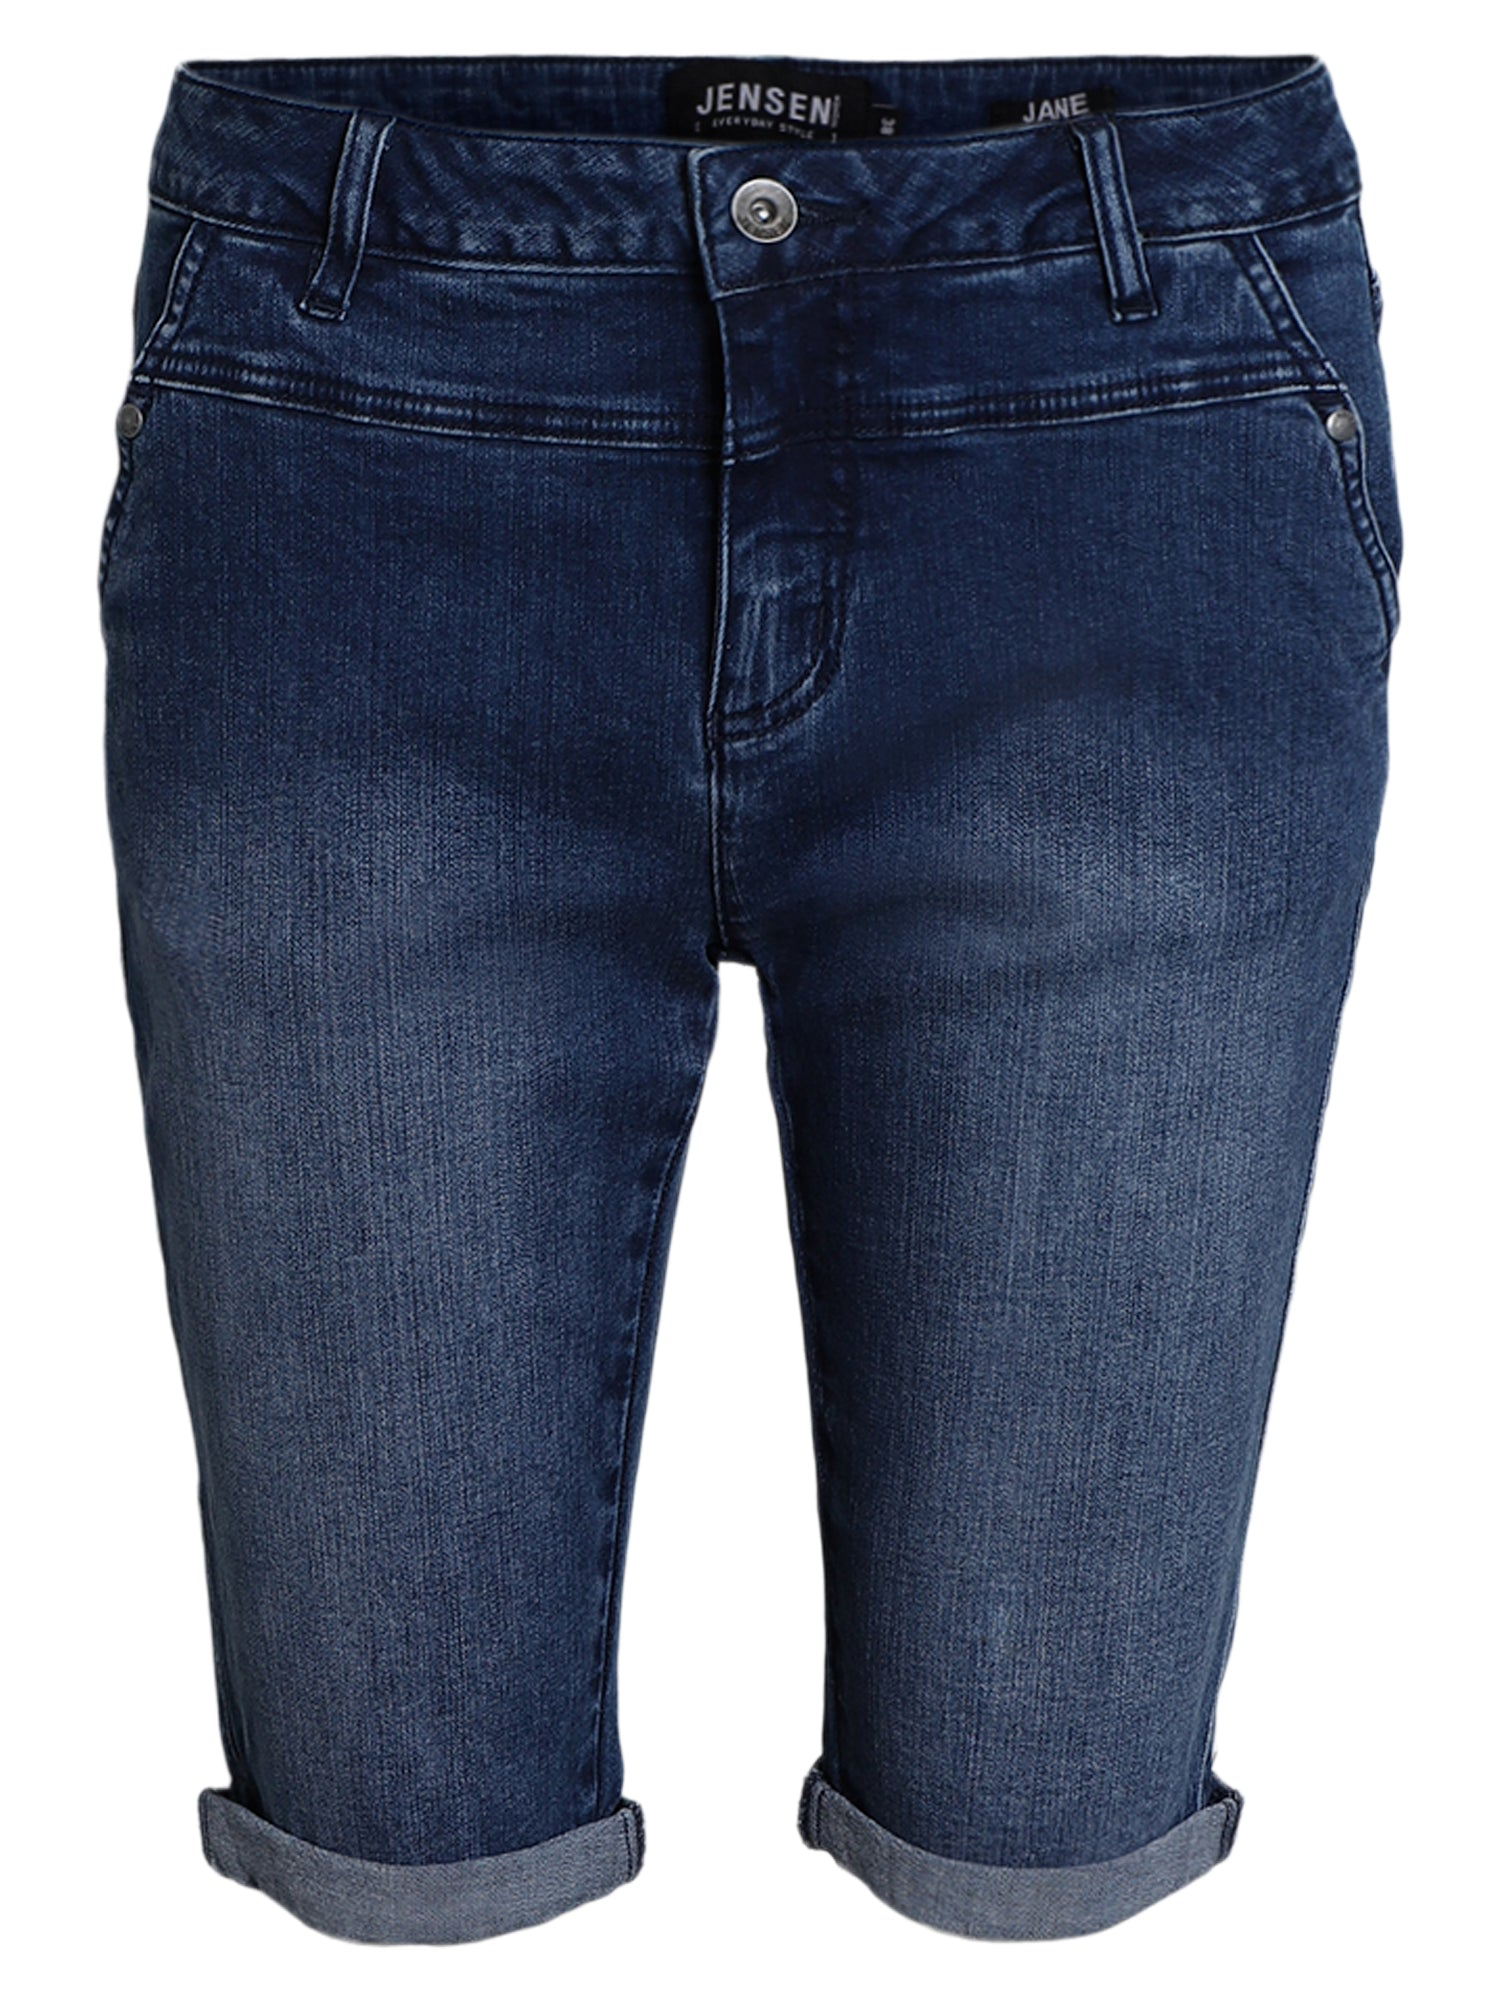 Image of   Jeans bermuda Jane - denim w. blast